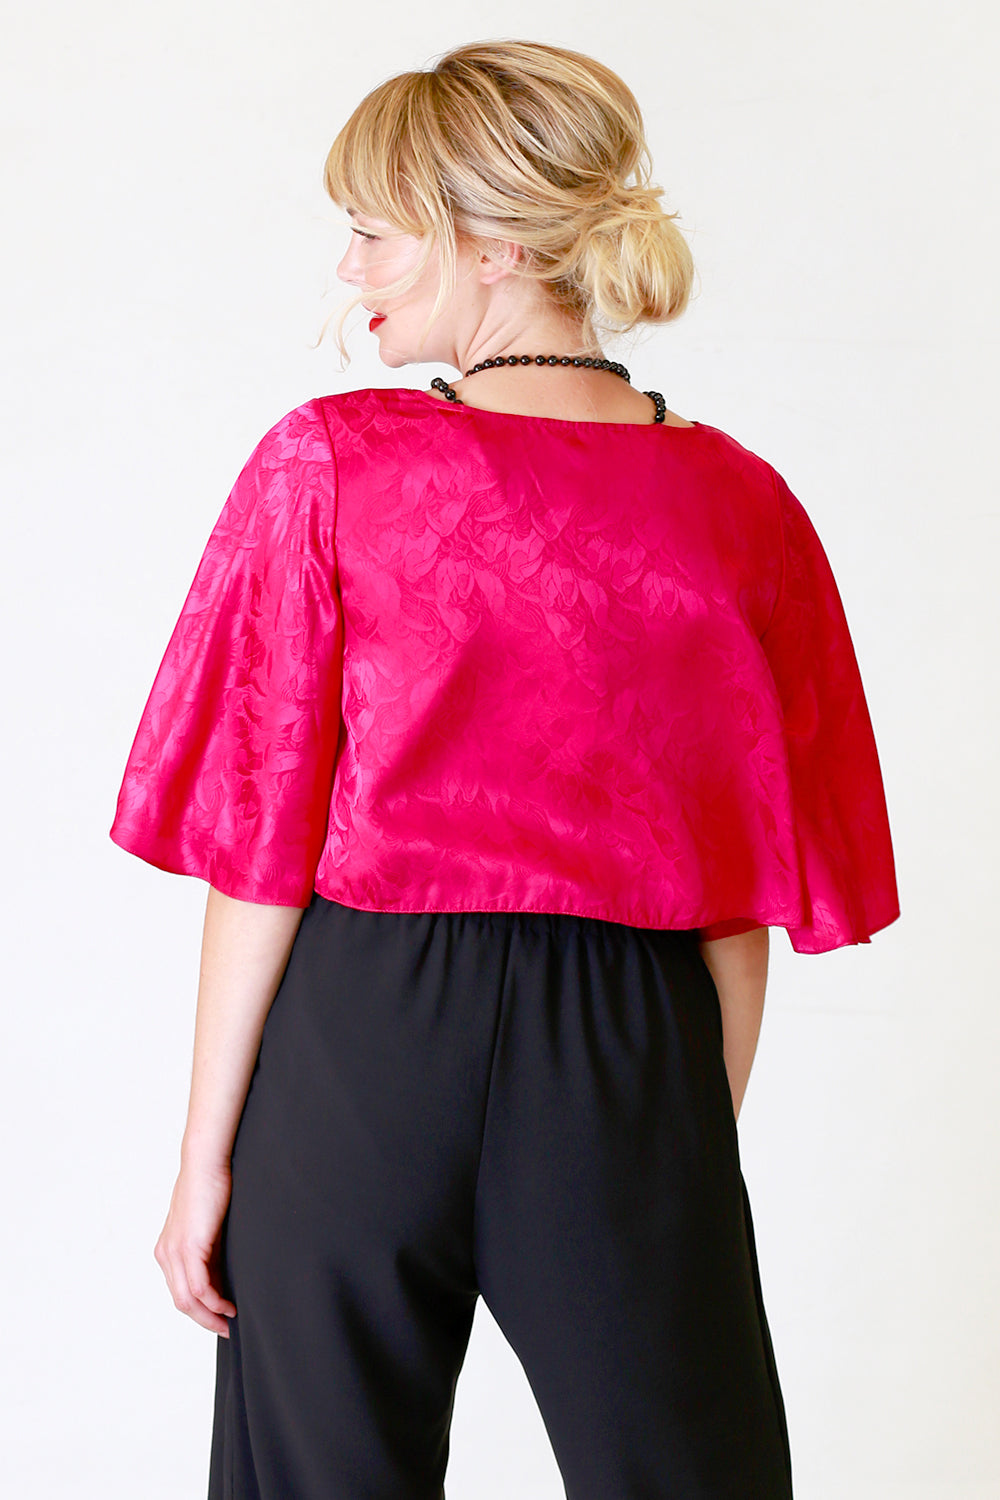 Cora Cece Top | Pink Top | Tops | Winter Collection | Fashion Design | Annah Stretton | New Zealand Fashion Designer